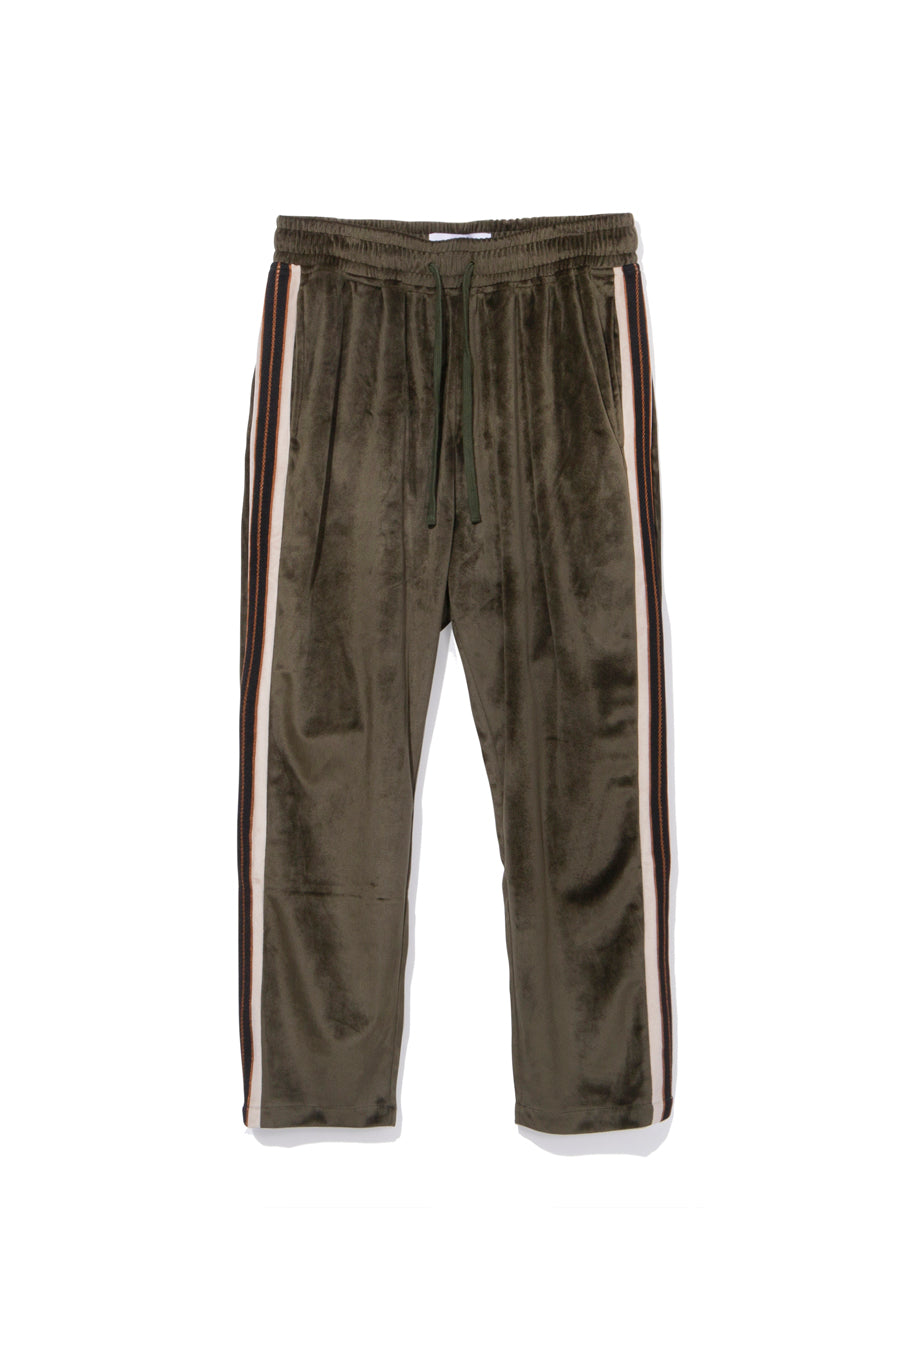 candorofficial - Track Pant, Olive - Bottoms